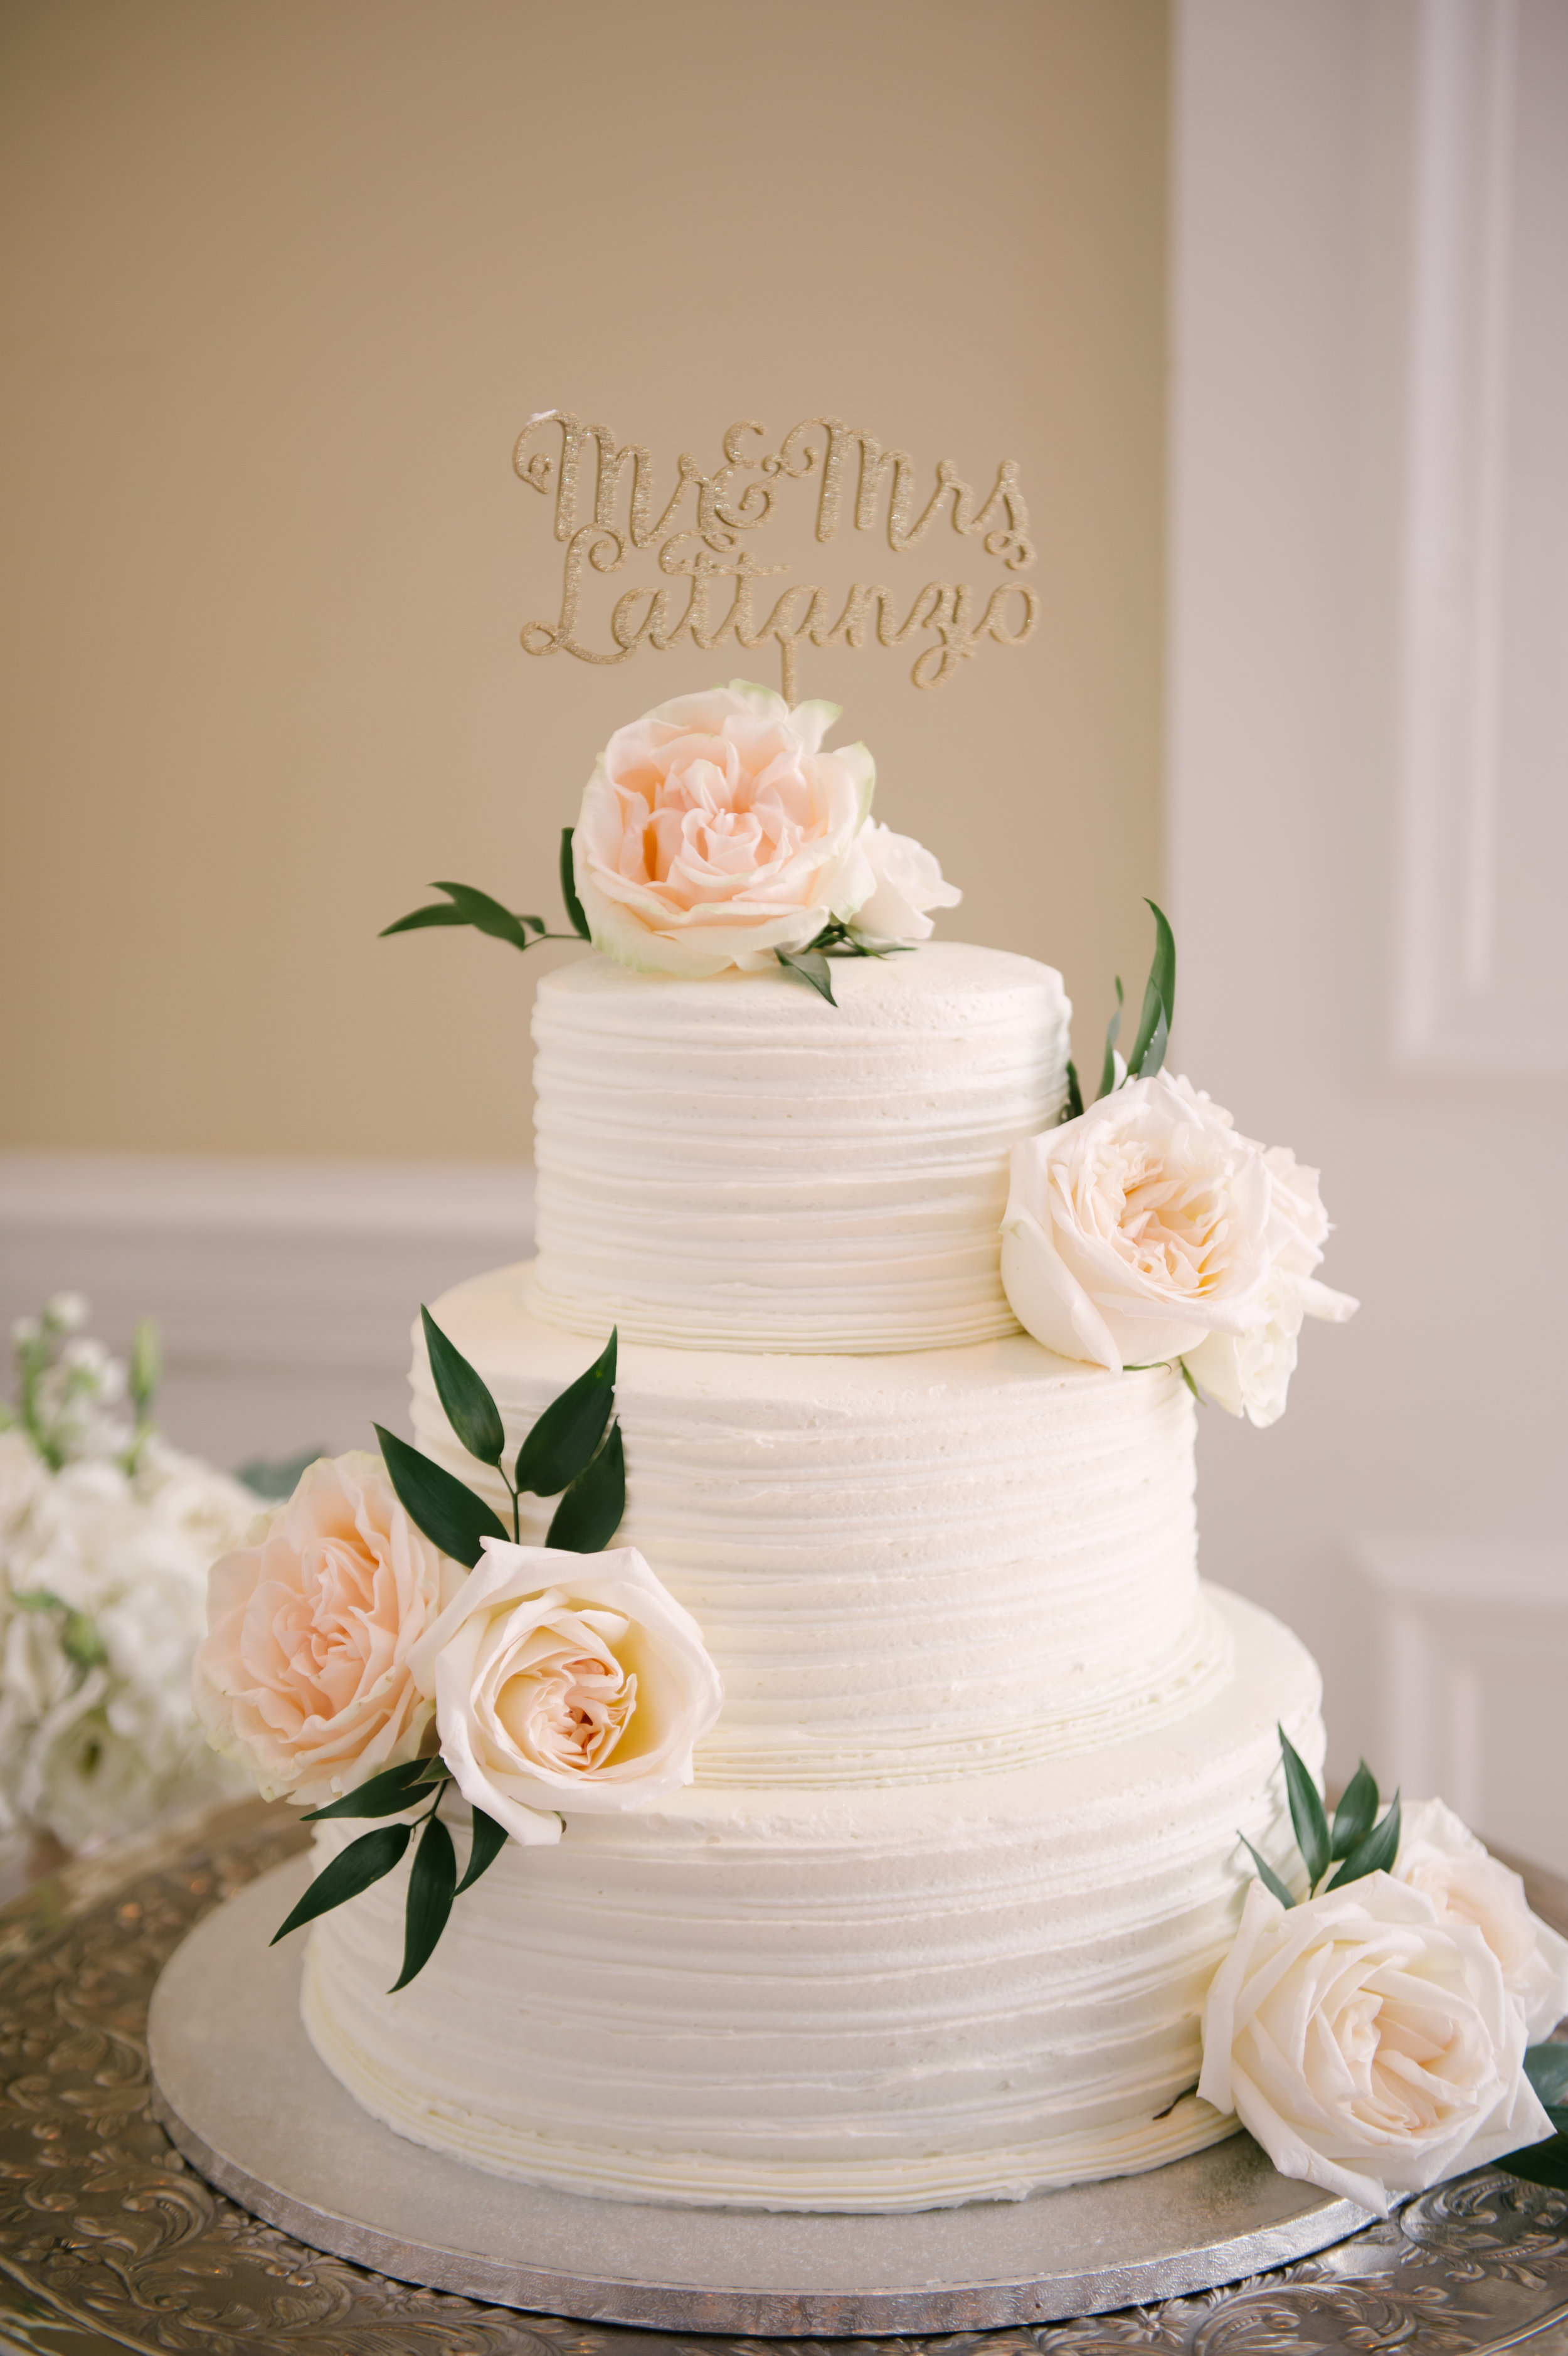 The simple yet stunning three tiered ivory cake accented with neutral florals and greenery, reflected the timeless and elegant style of the wedding. And how cute is that custom gold cake topper?!